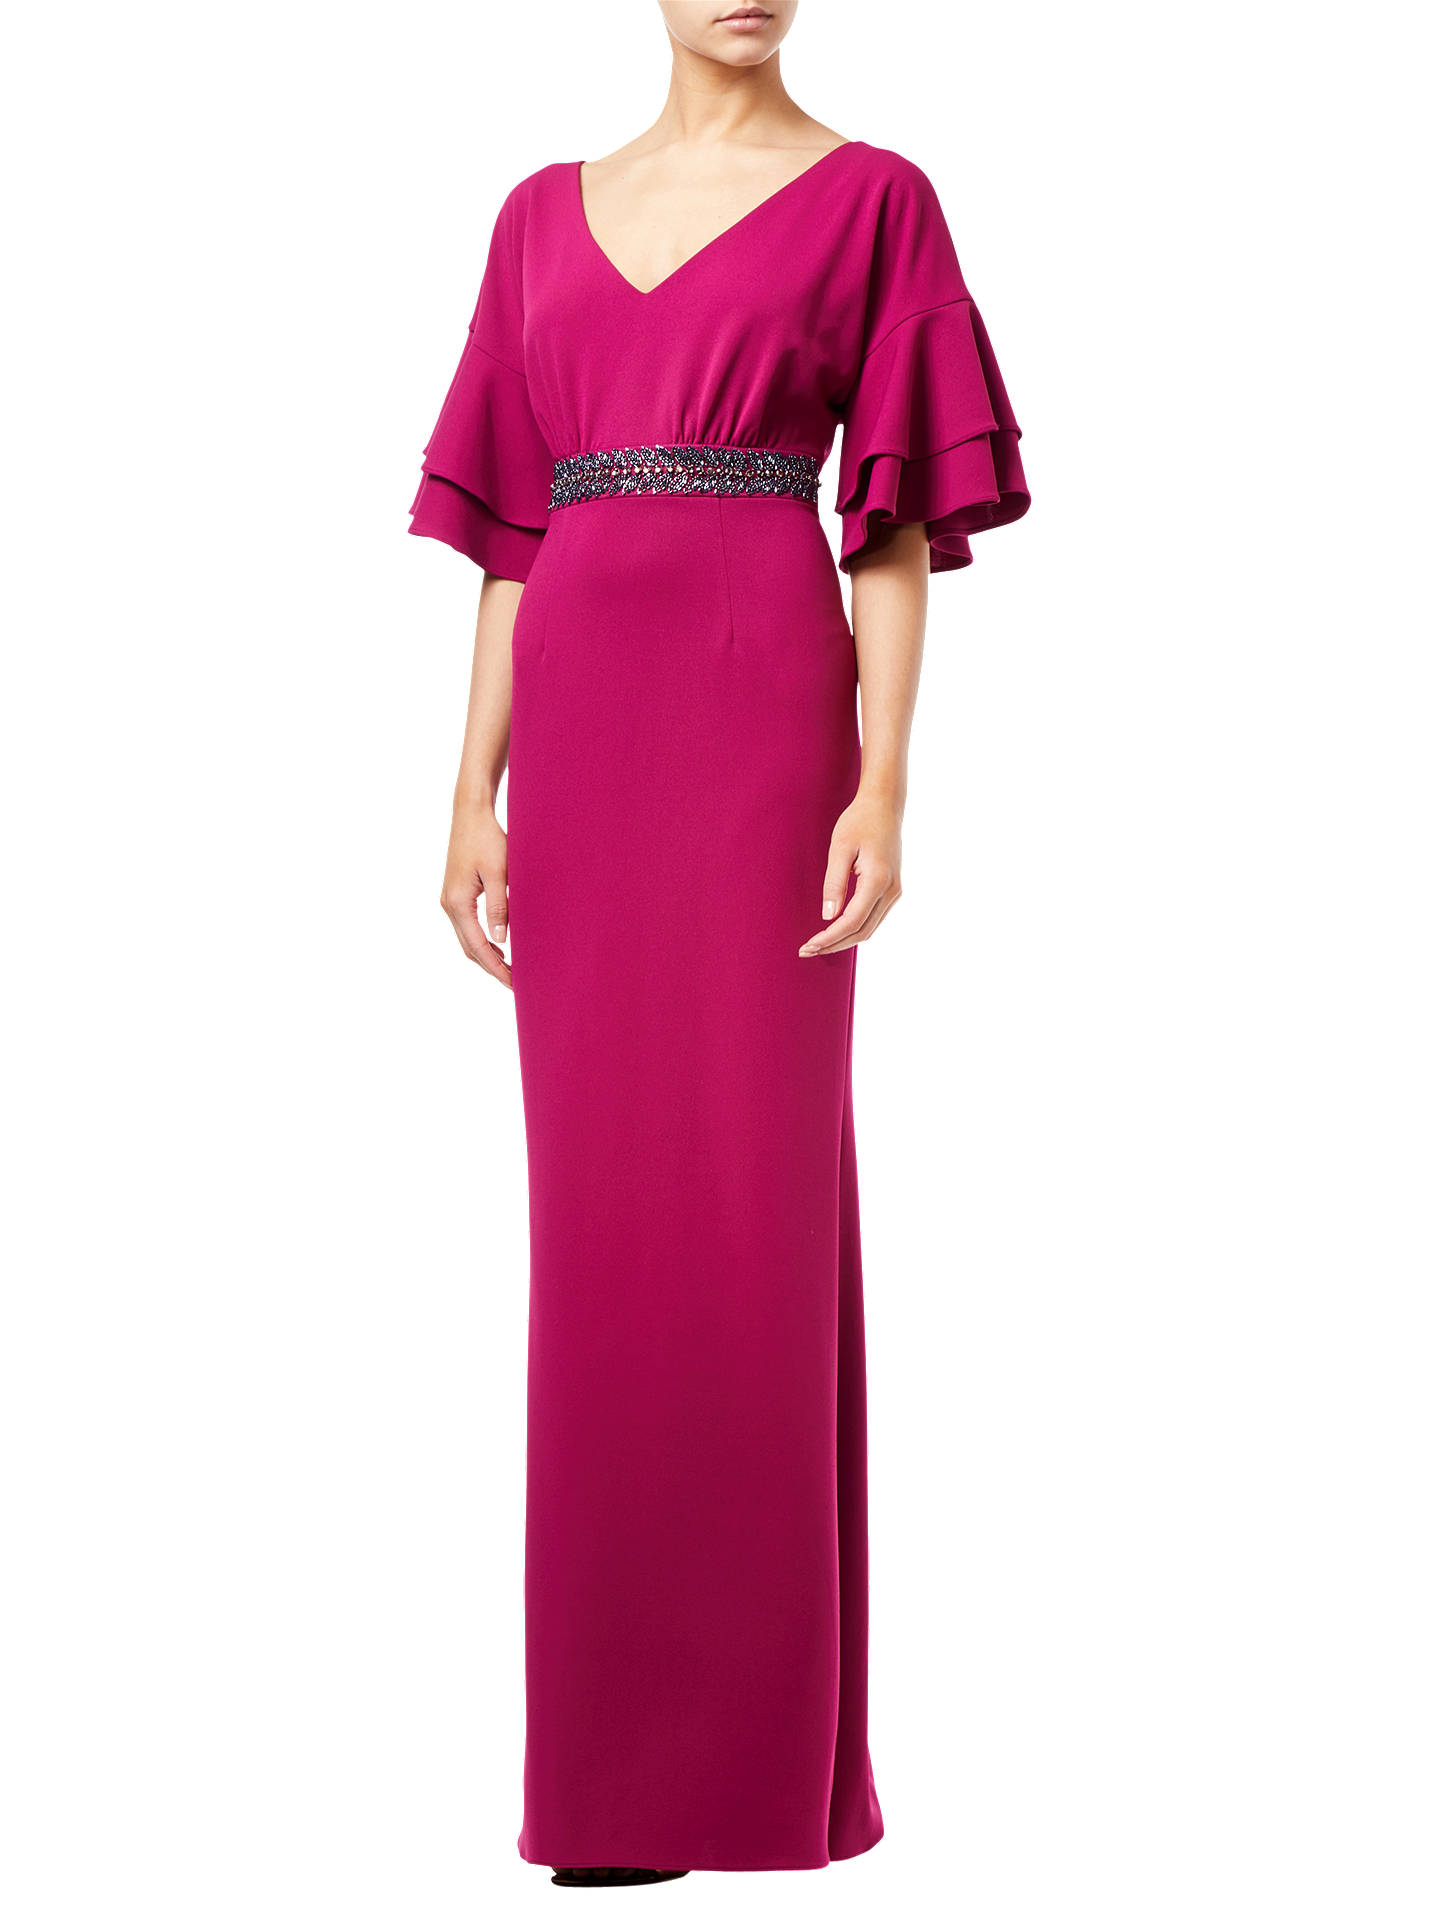 BuyAdrianna Papell Long Crepe Dress, Plum, 8 Online at johnlewis.com